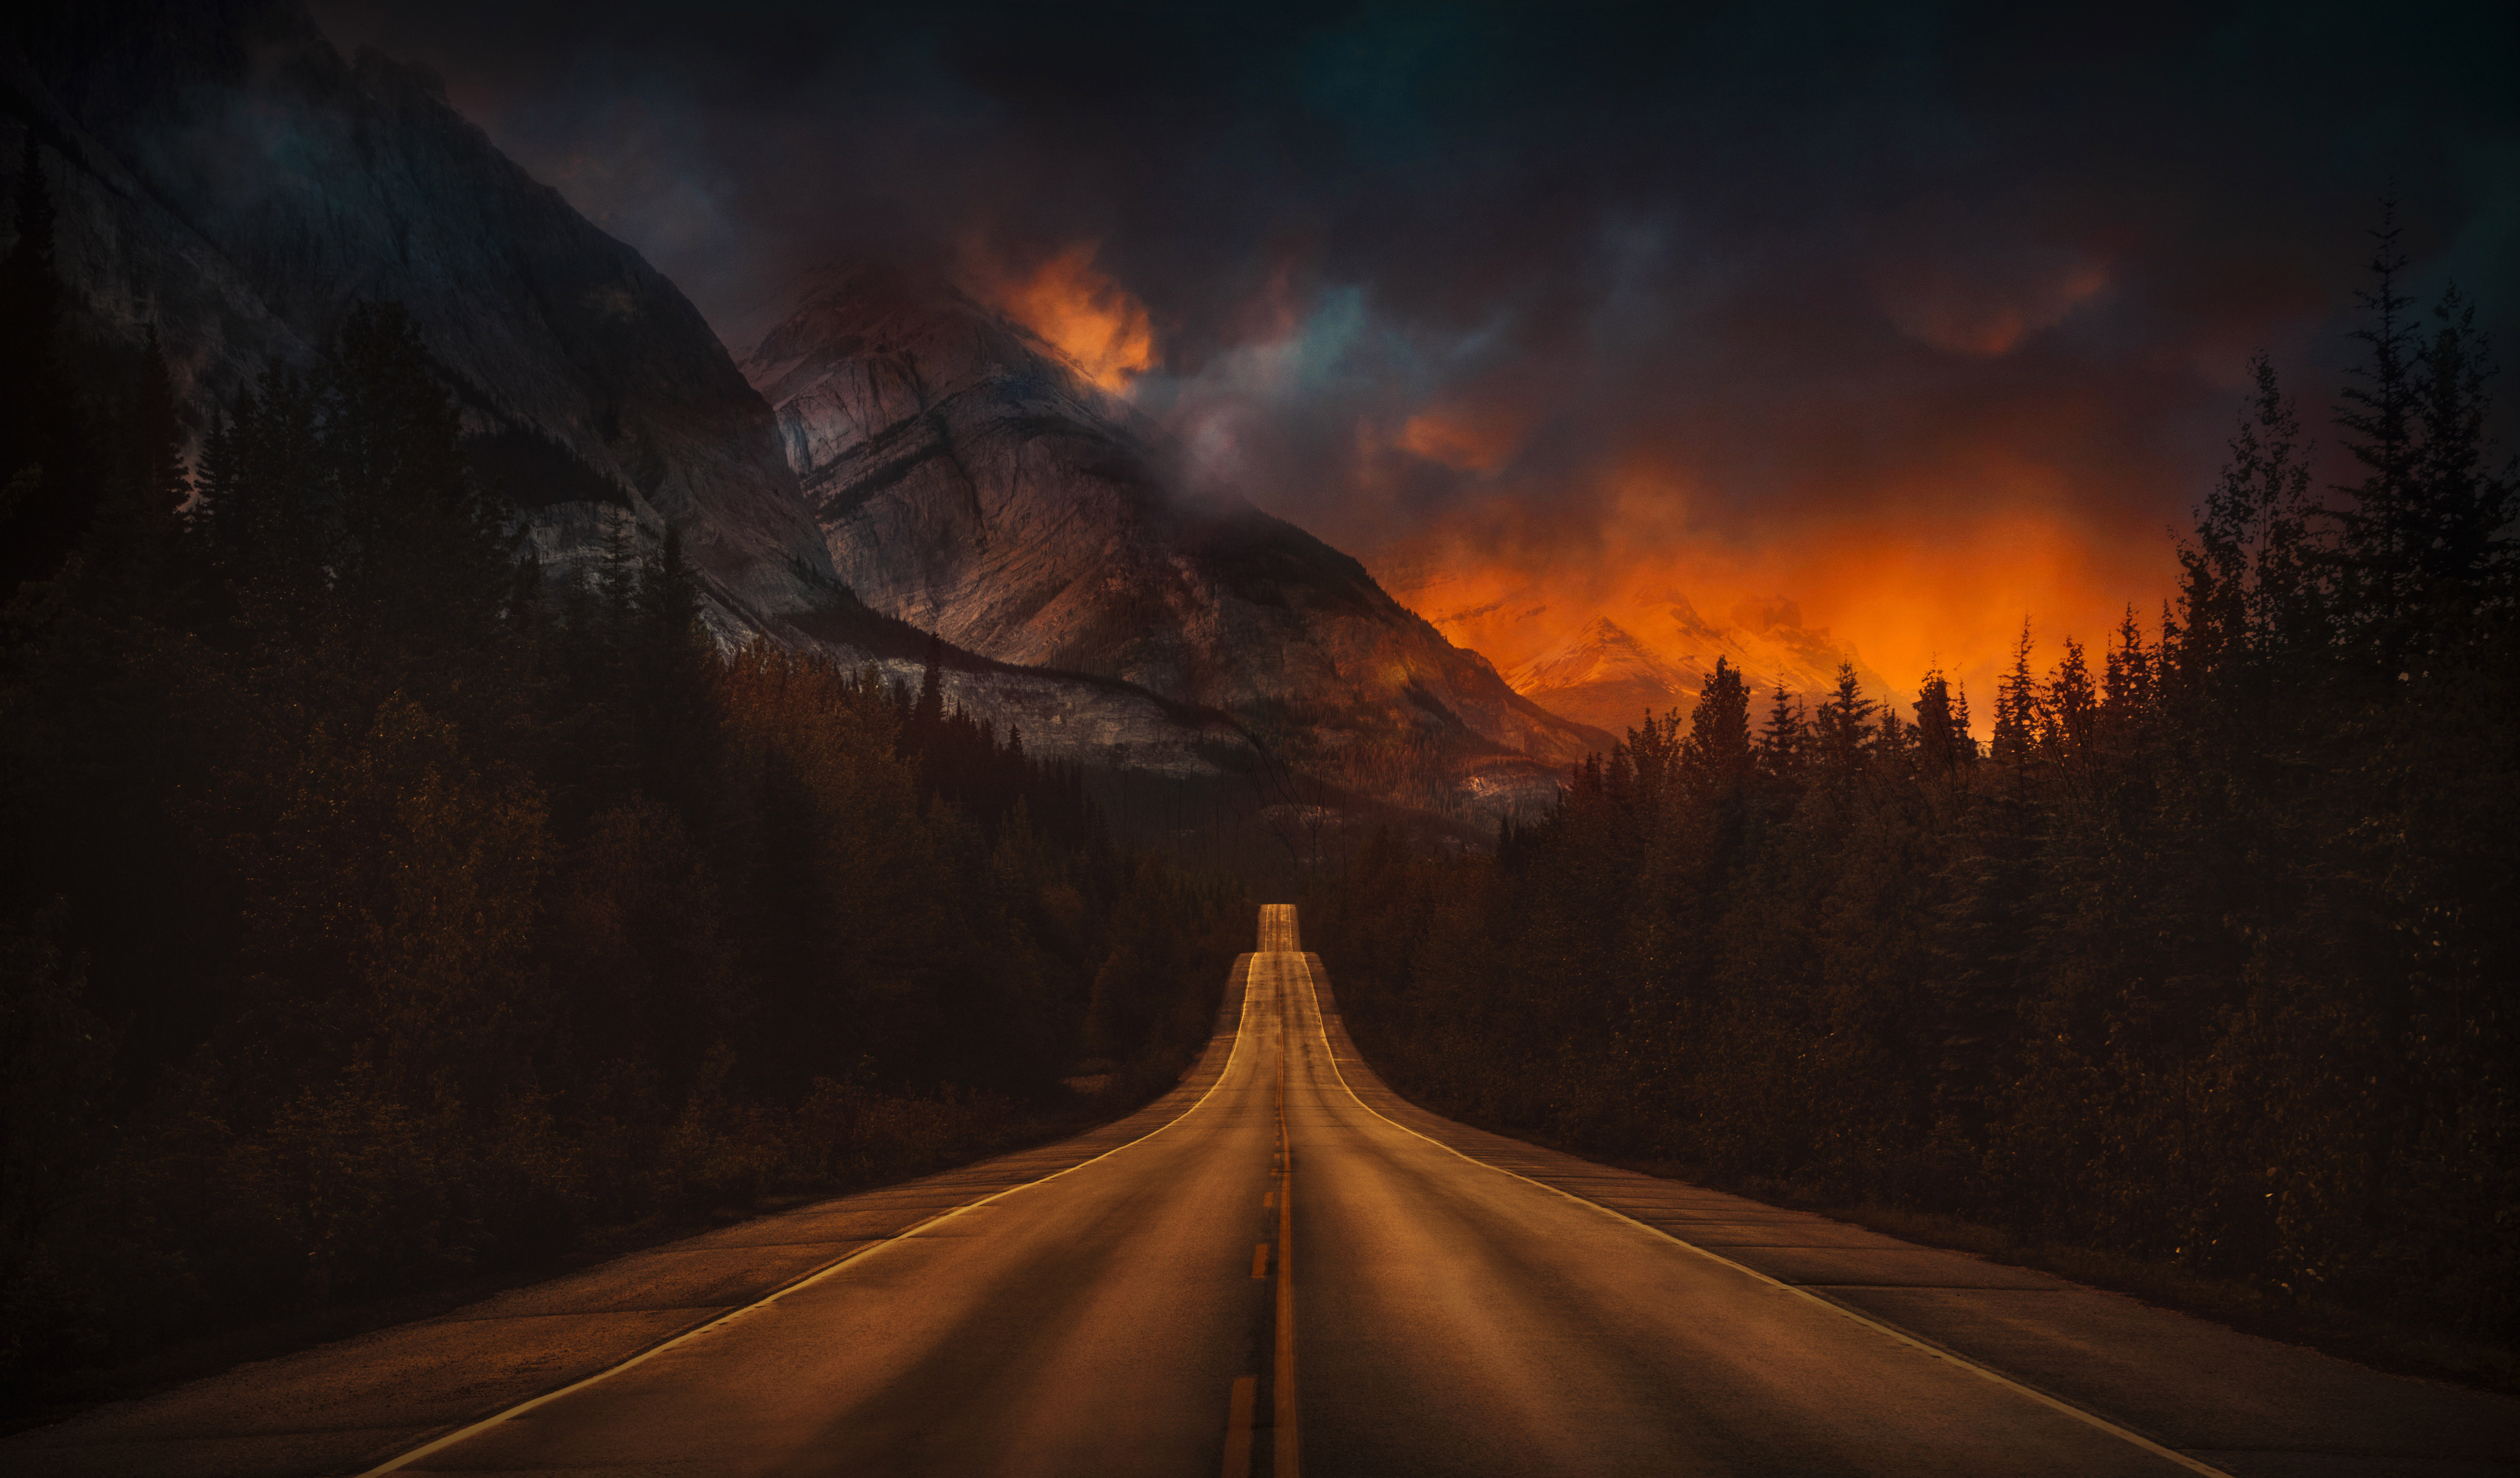 1366x768 Mountain Nature Night Road 4k 1366x768 Resolution Hd 4k Wallpapers Images Backgrounds Photos And Pictures